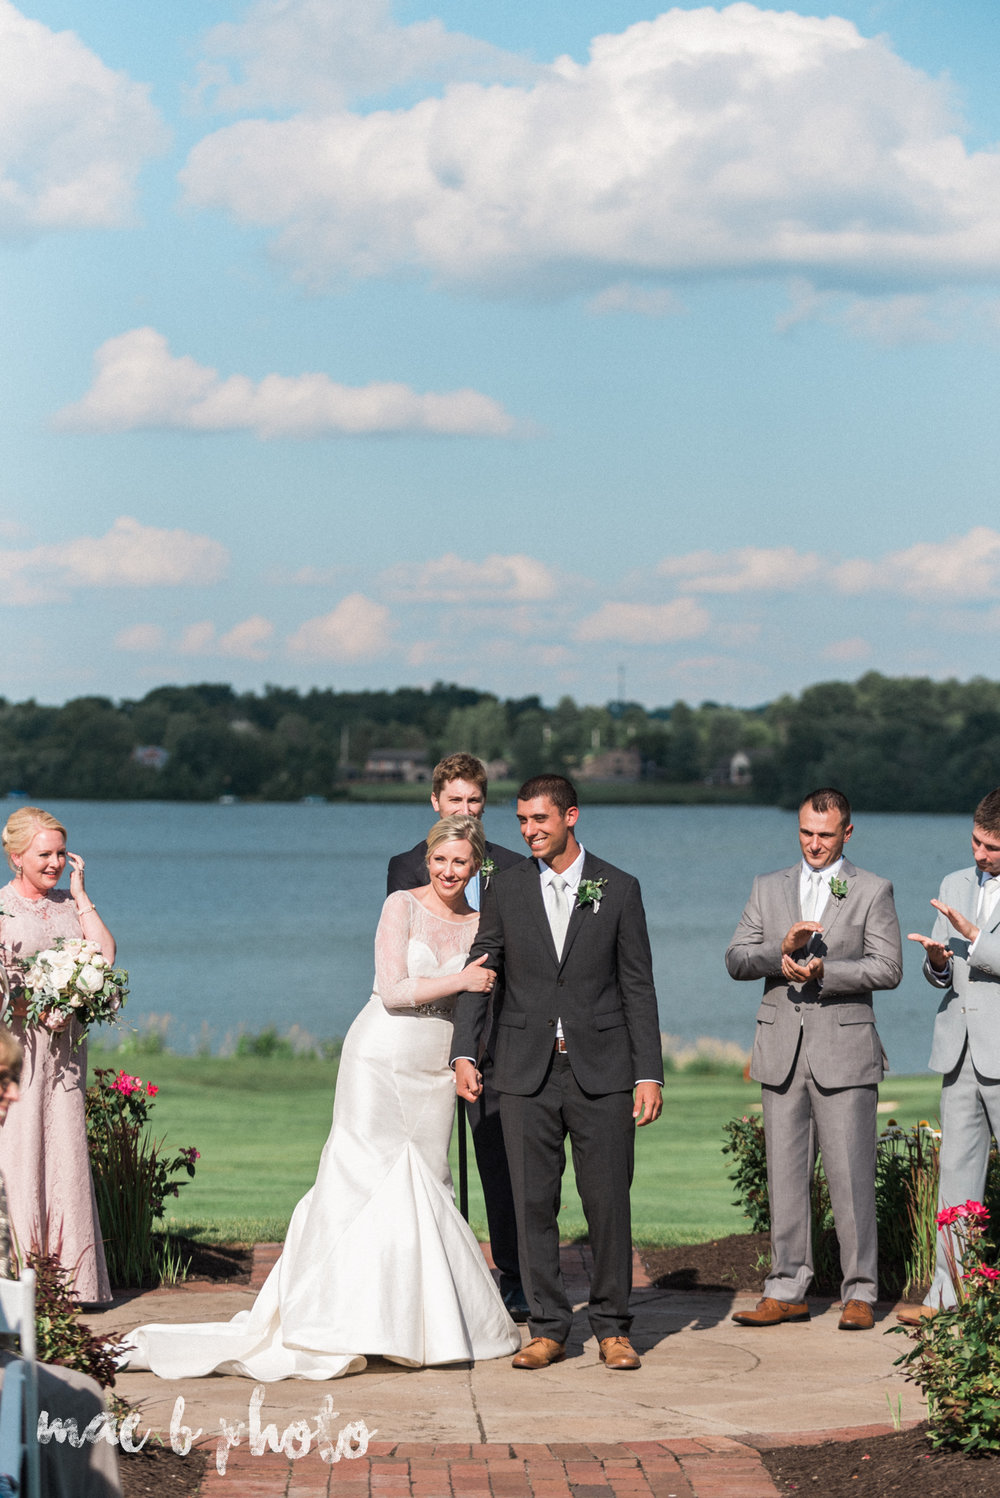 emily and michael's industrial chic summer country club wedding at the lake club in poland ohio photographed by cleveland wedding photographer mae b photo-101.jpg